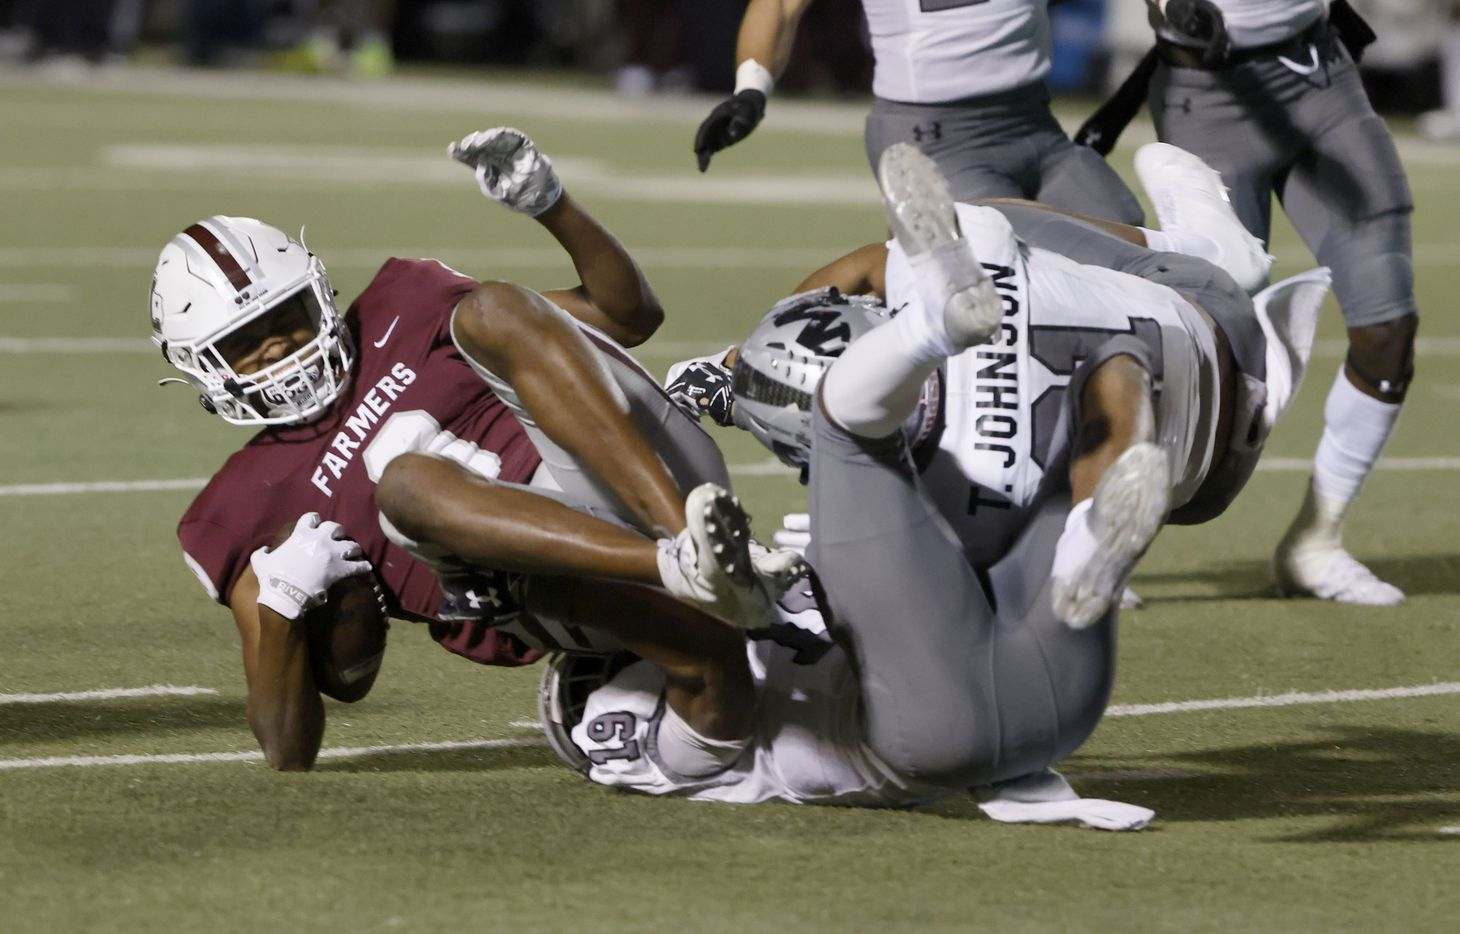 Lewisville's Armani Winfield (9) is tackled by Arlington Martin's Placide Djungu-Sungu (19) and Travel Johnson (21) during Class 6A Division I area-round playoff hight school football game on Dec. 17, 2020. (Michael Ainsworth/Special Contributor)